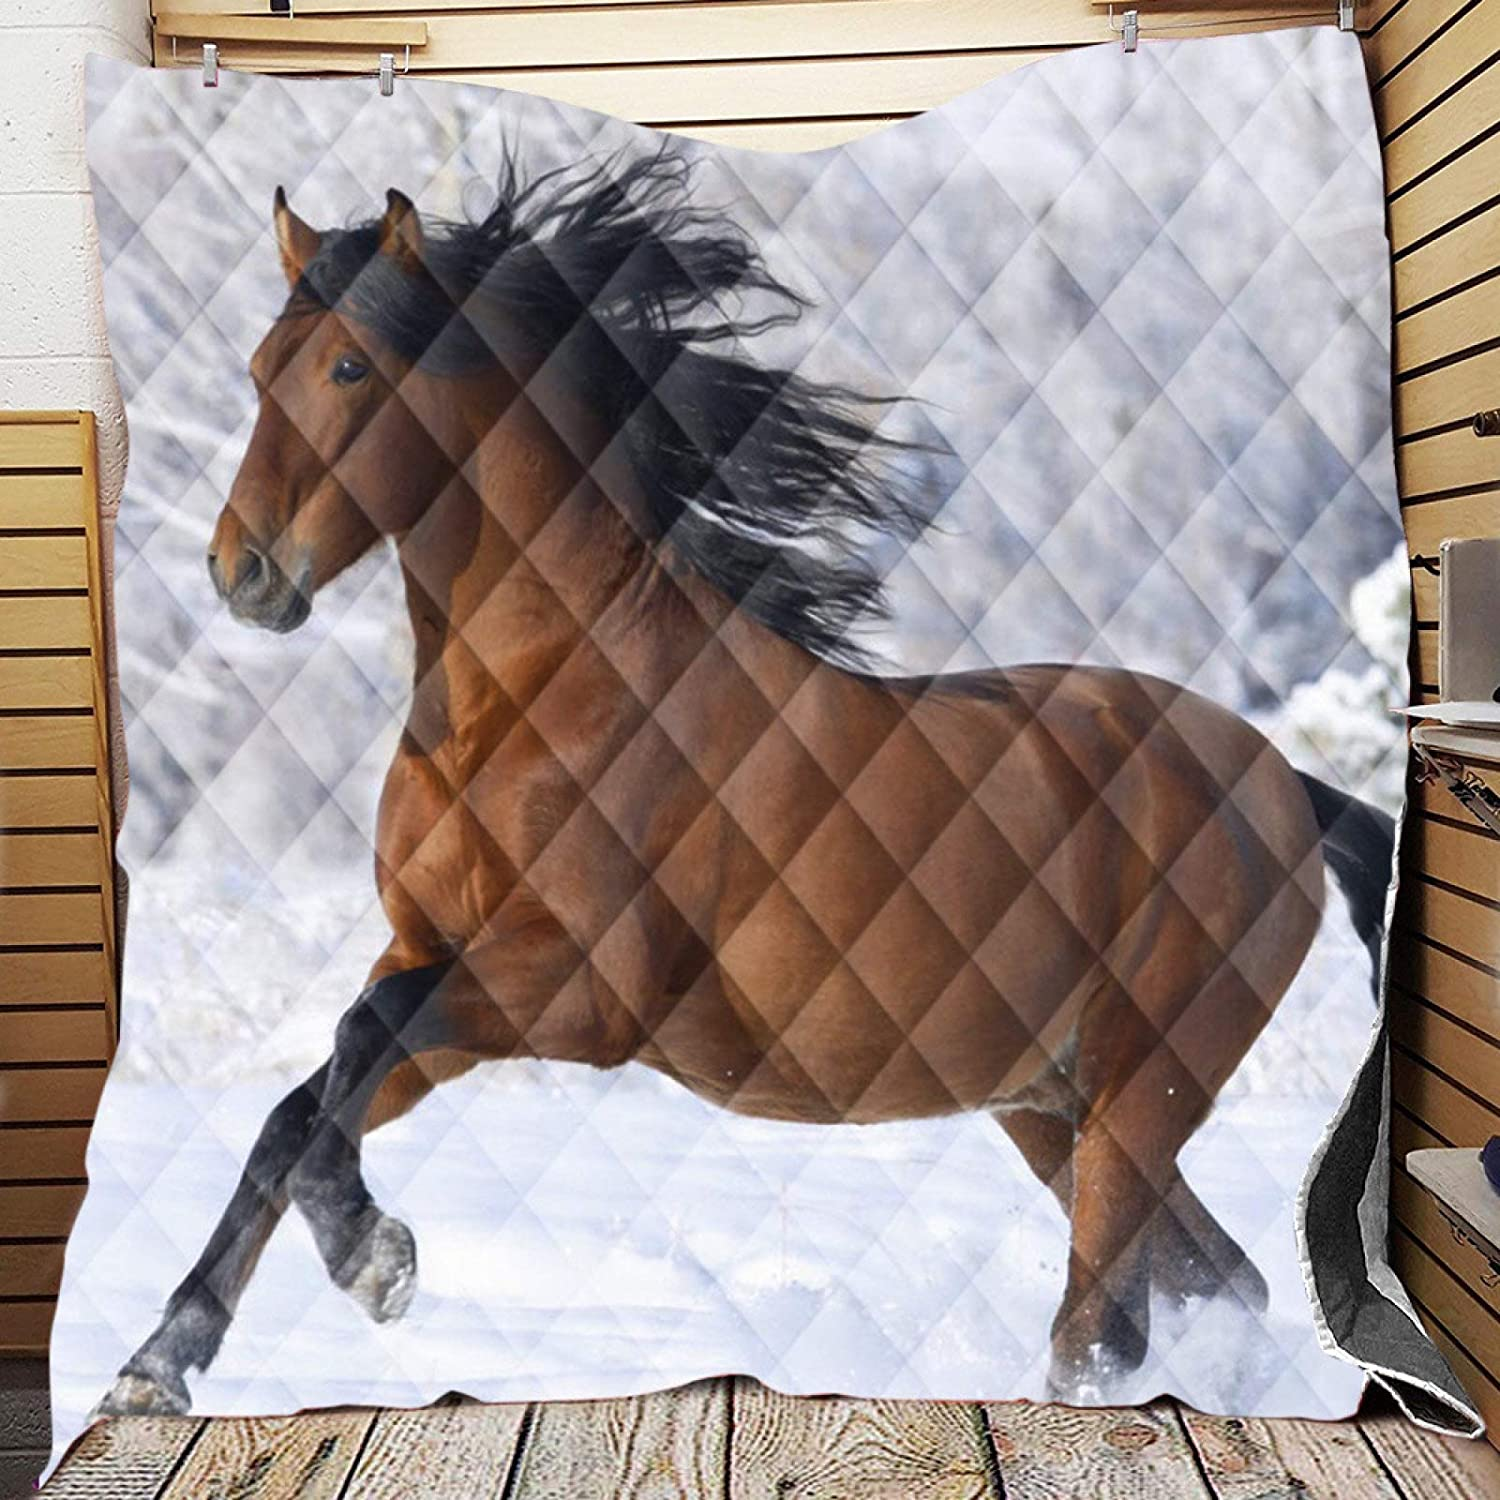 STJZXHN Quilted Blanket Horse in Purchase Ranking TOP11 The Printed Qui Snow 3D Animal